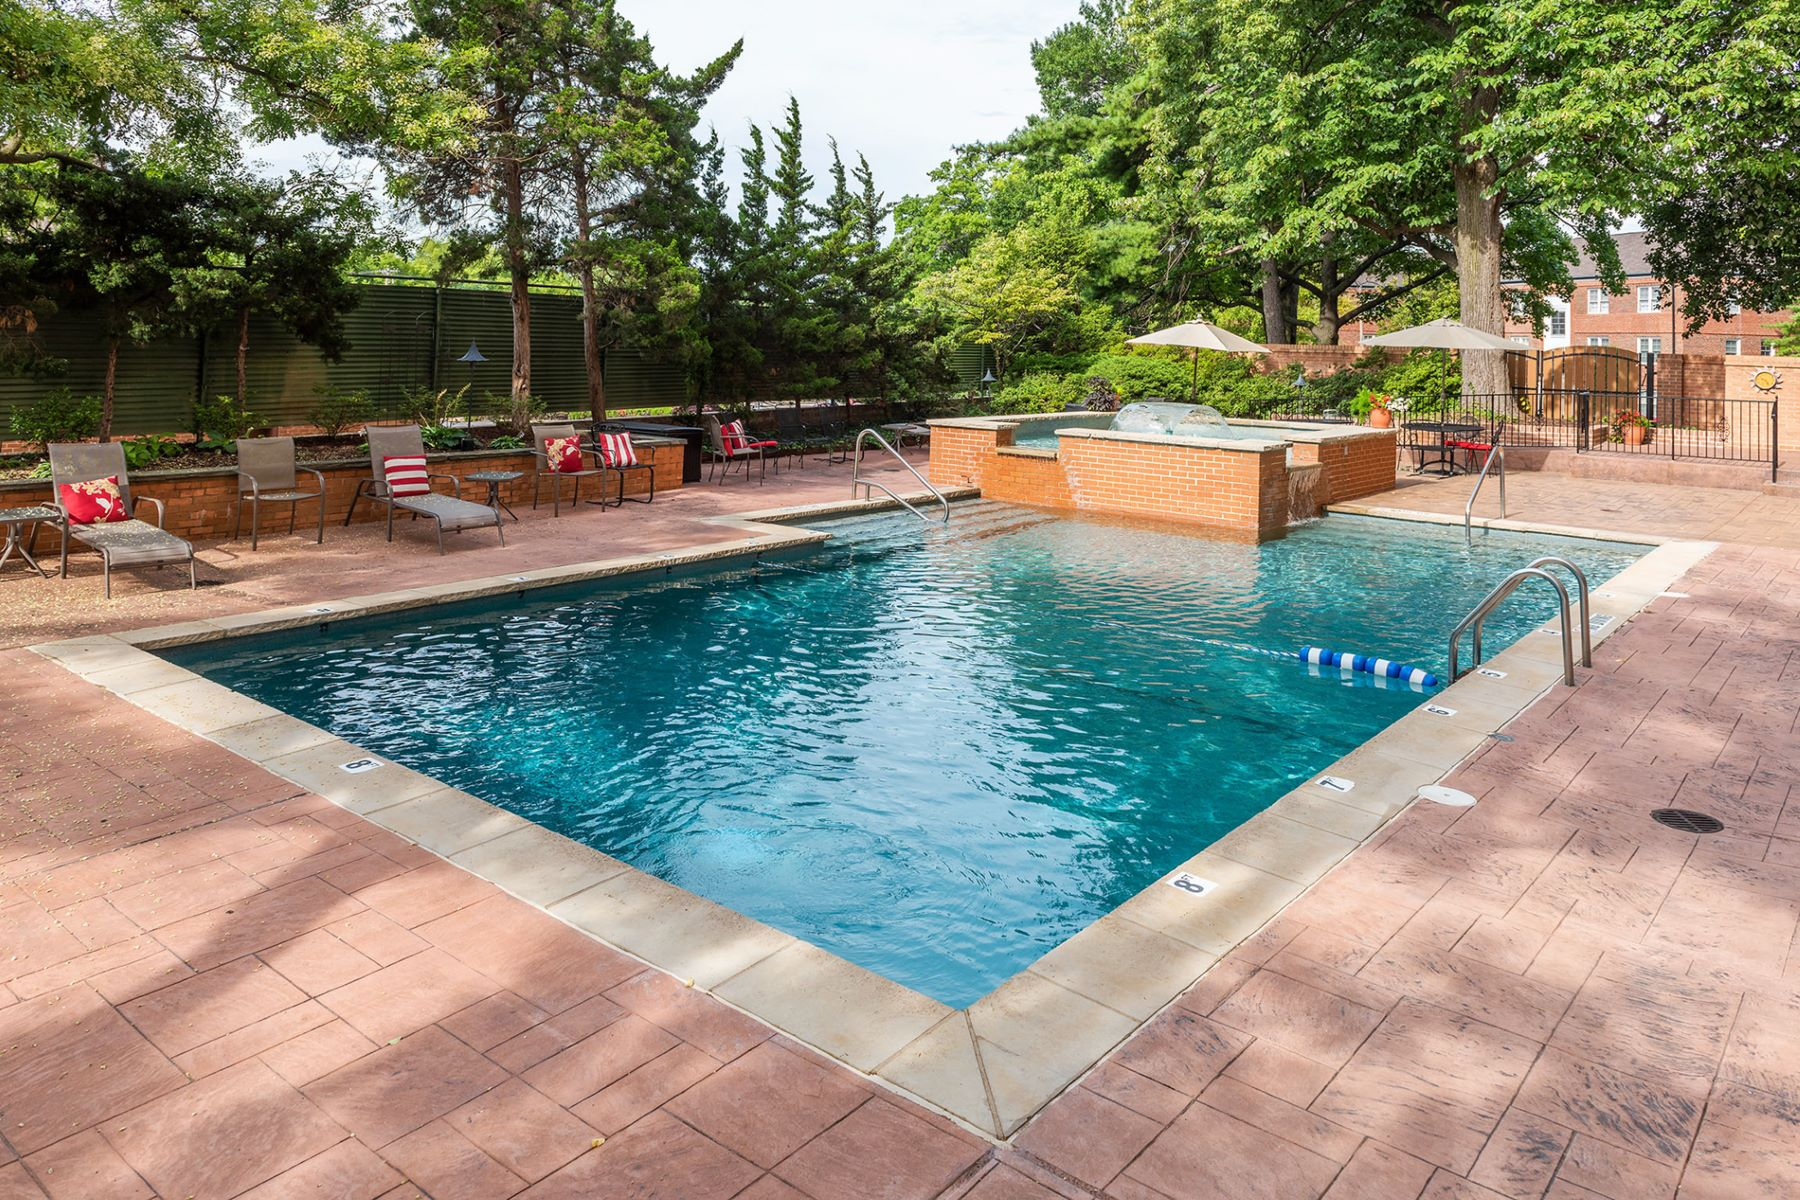 Additional photo for property listing at South Hanley Rd #12C 900 South Hanley Road # 12C Clayton, Missouri 63105 United States